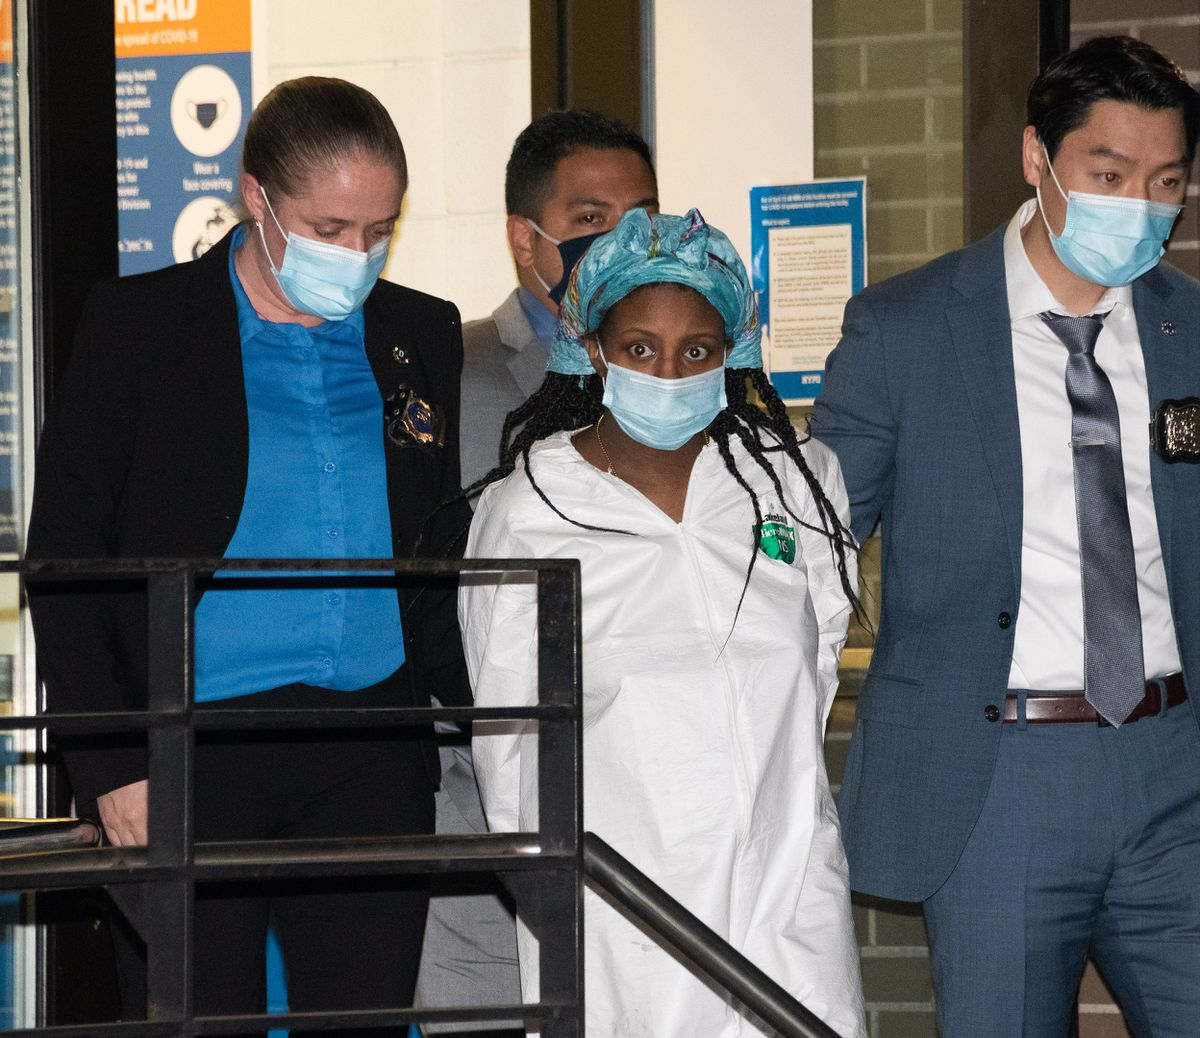 Danezja Kilpatrick is escorted from the NYPD's 114th Precinct station house in Queens, New York, on Friday, April 23.